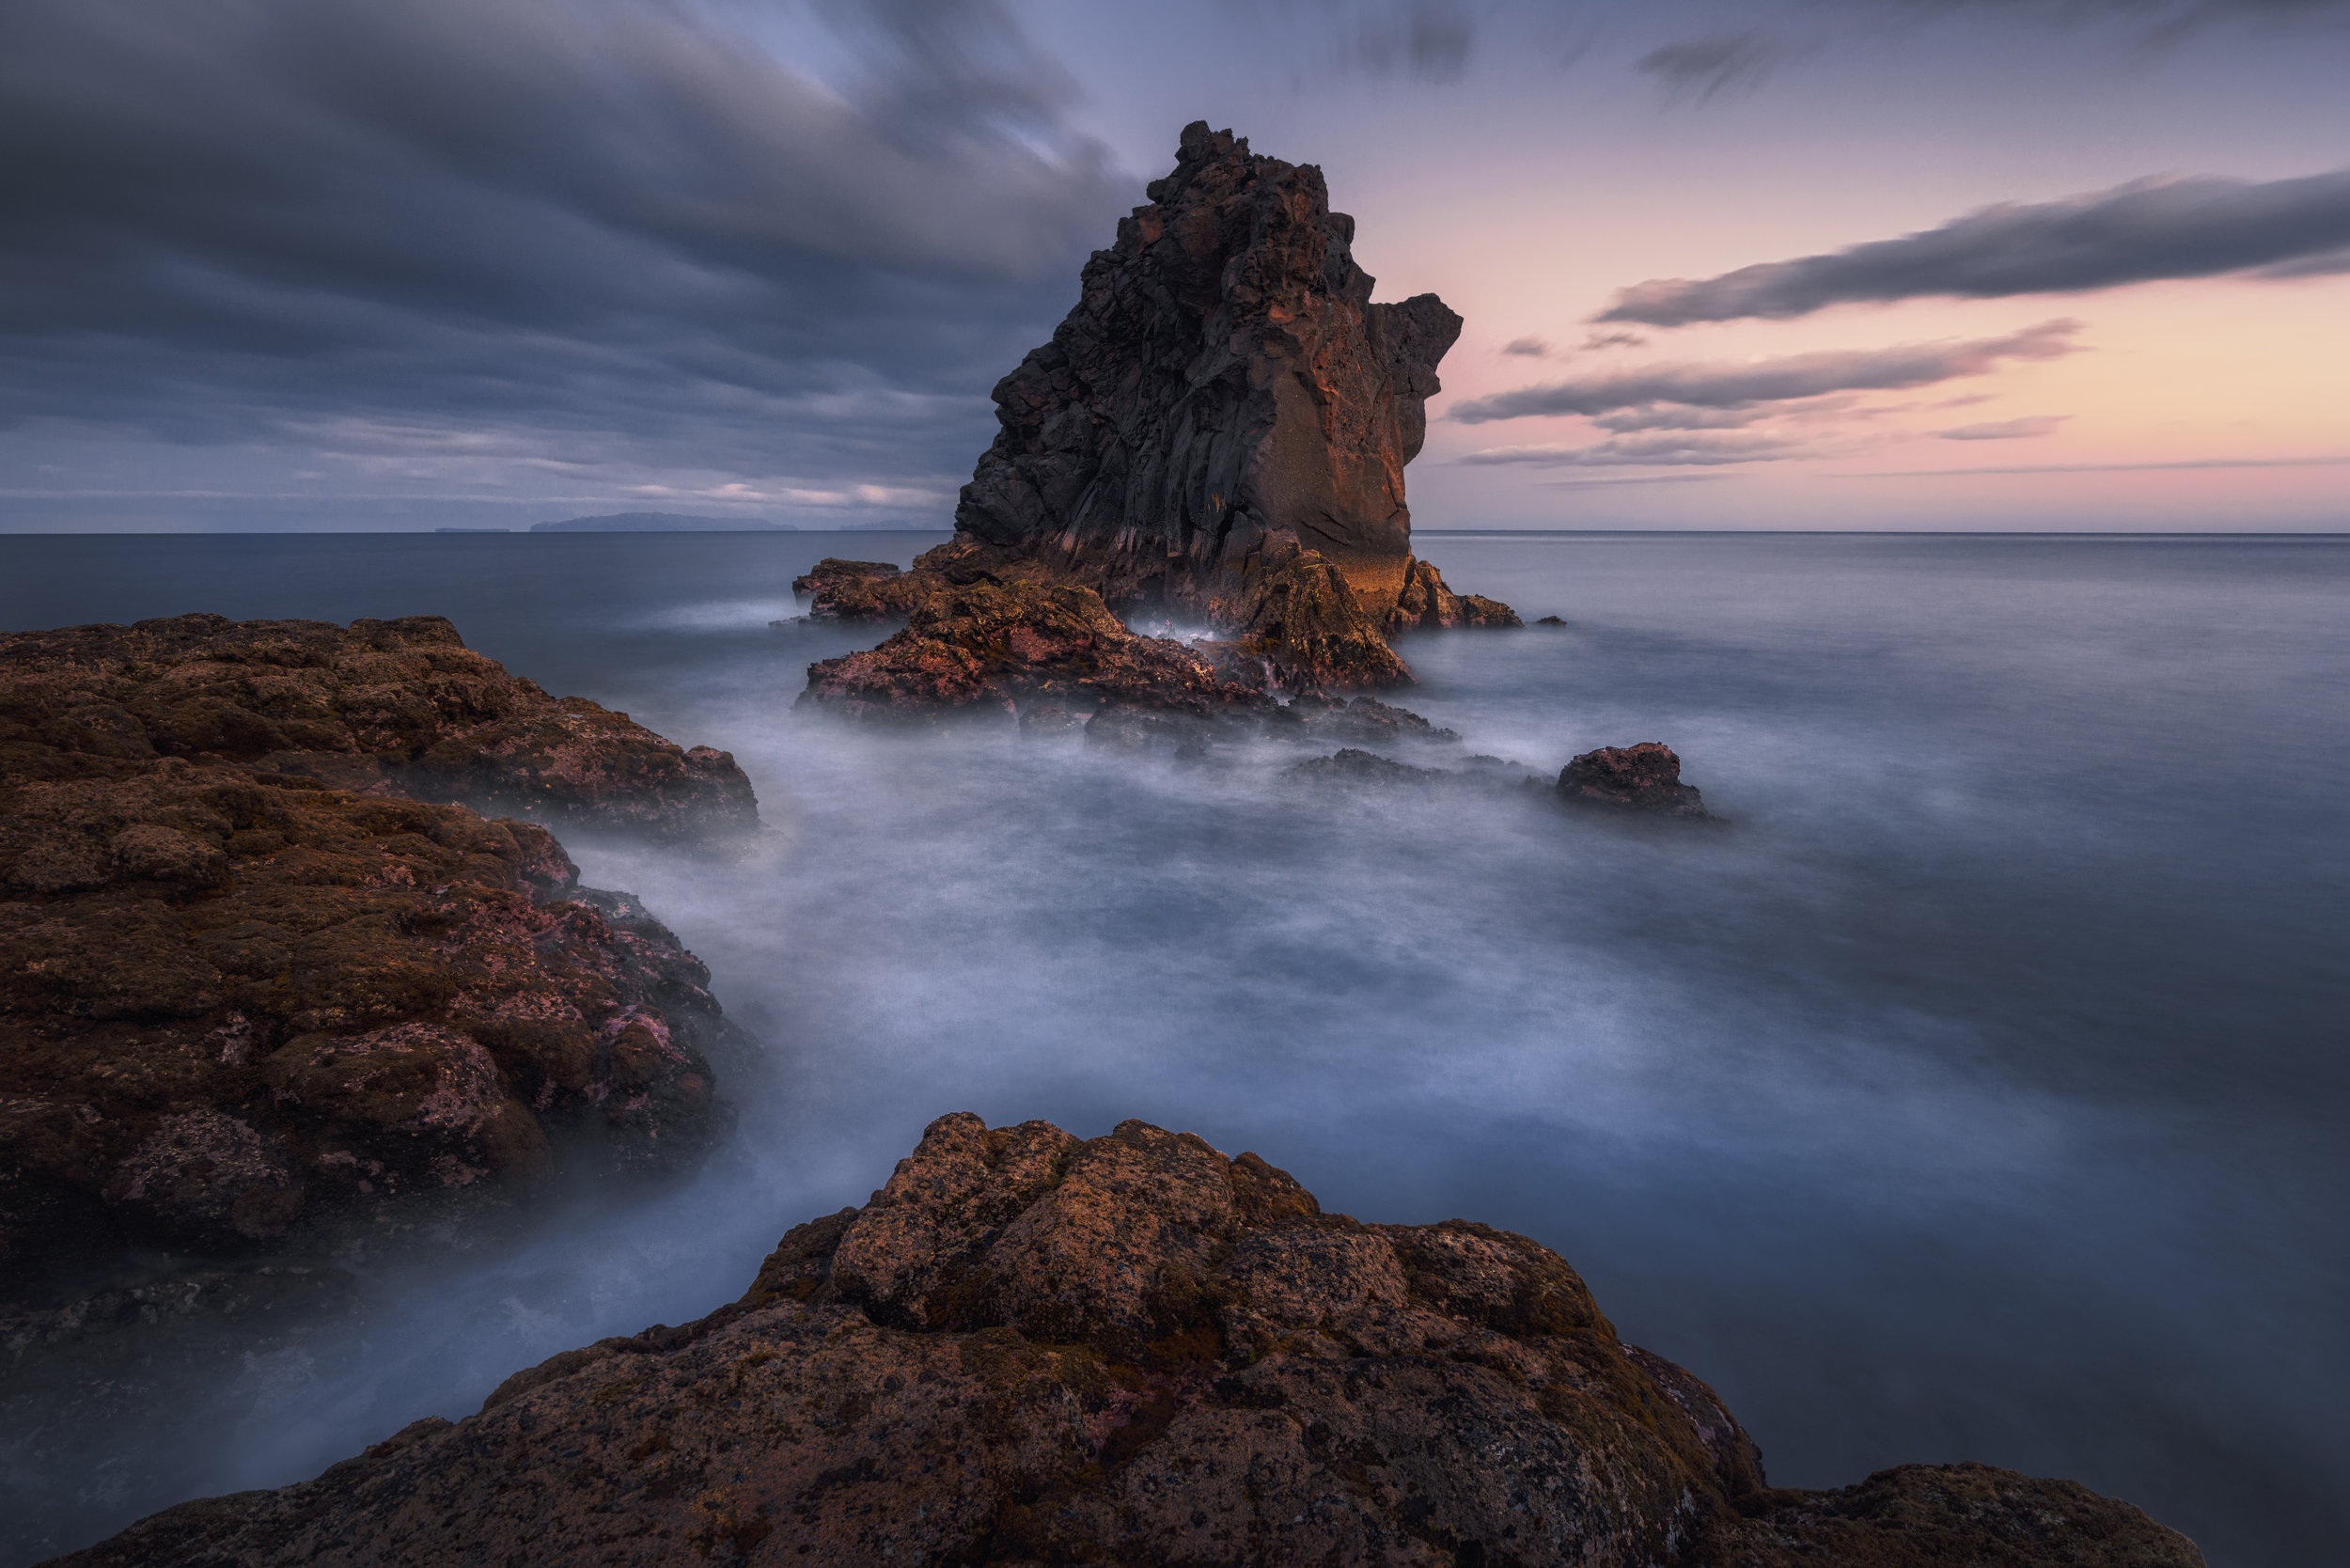 Santa Cruz, Madeira - long exposure of 30 seconds made possible by using a 10 stop ND filter ( NanoPro ND 3.0 100x100mm Filter )